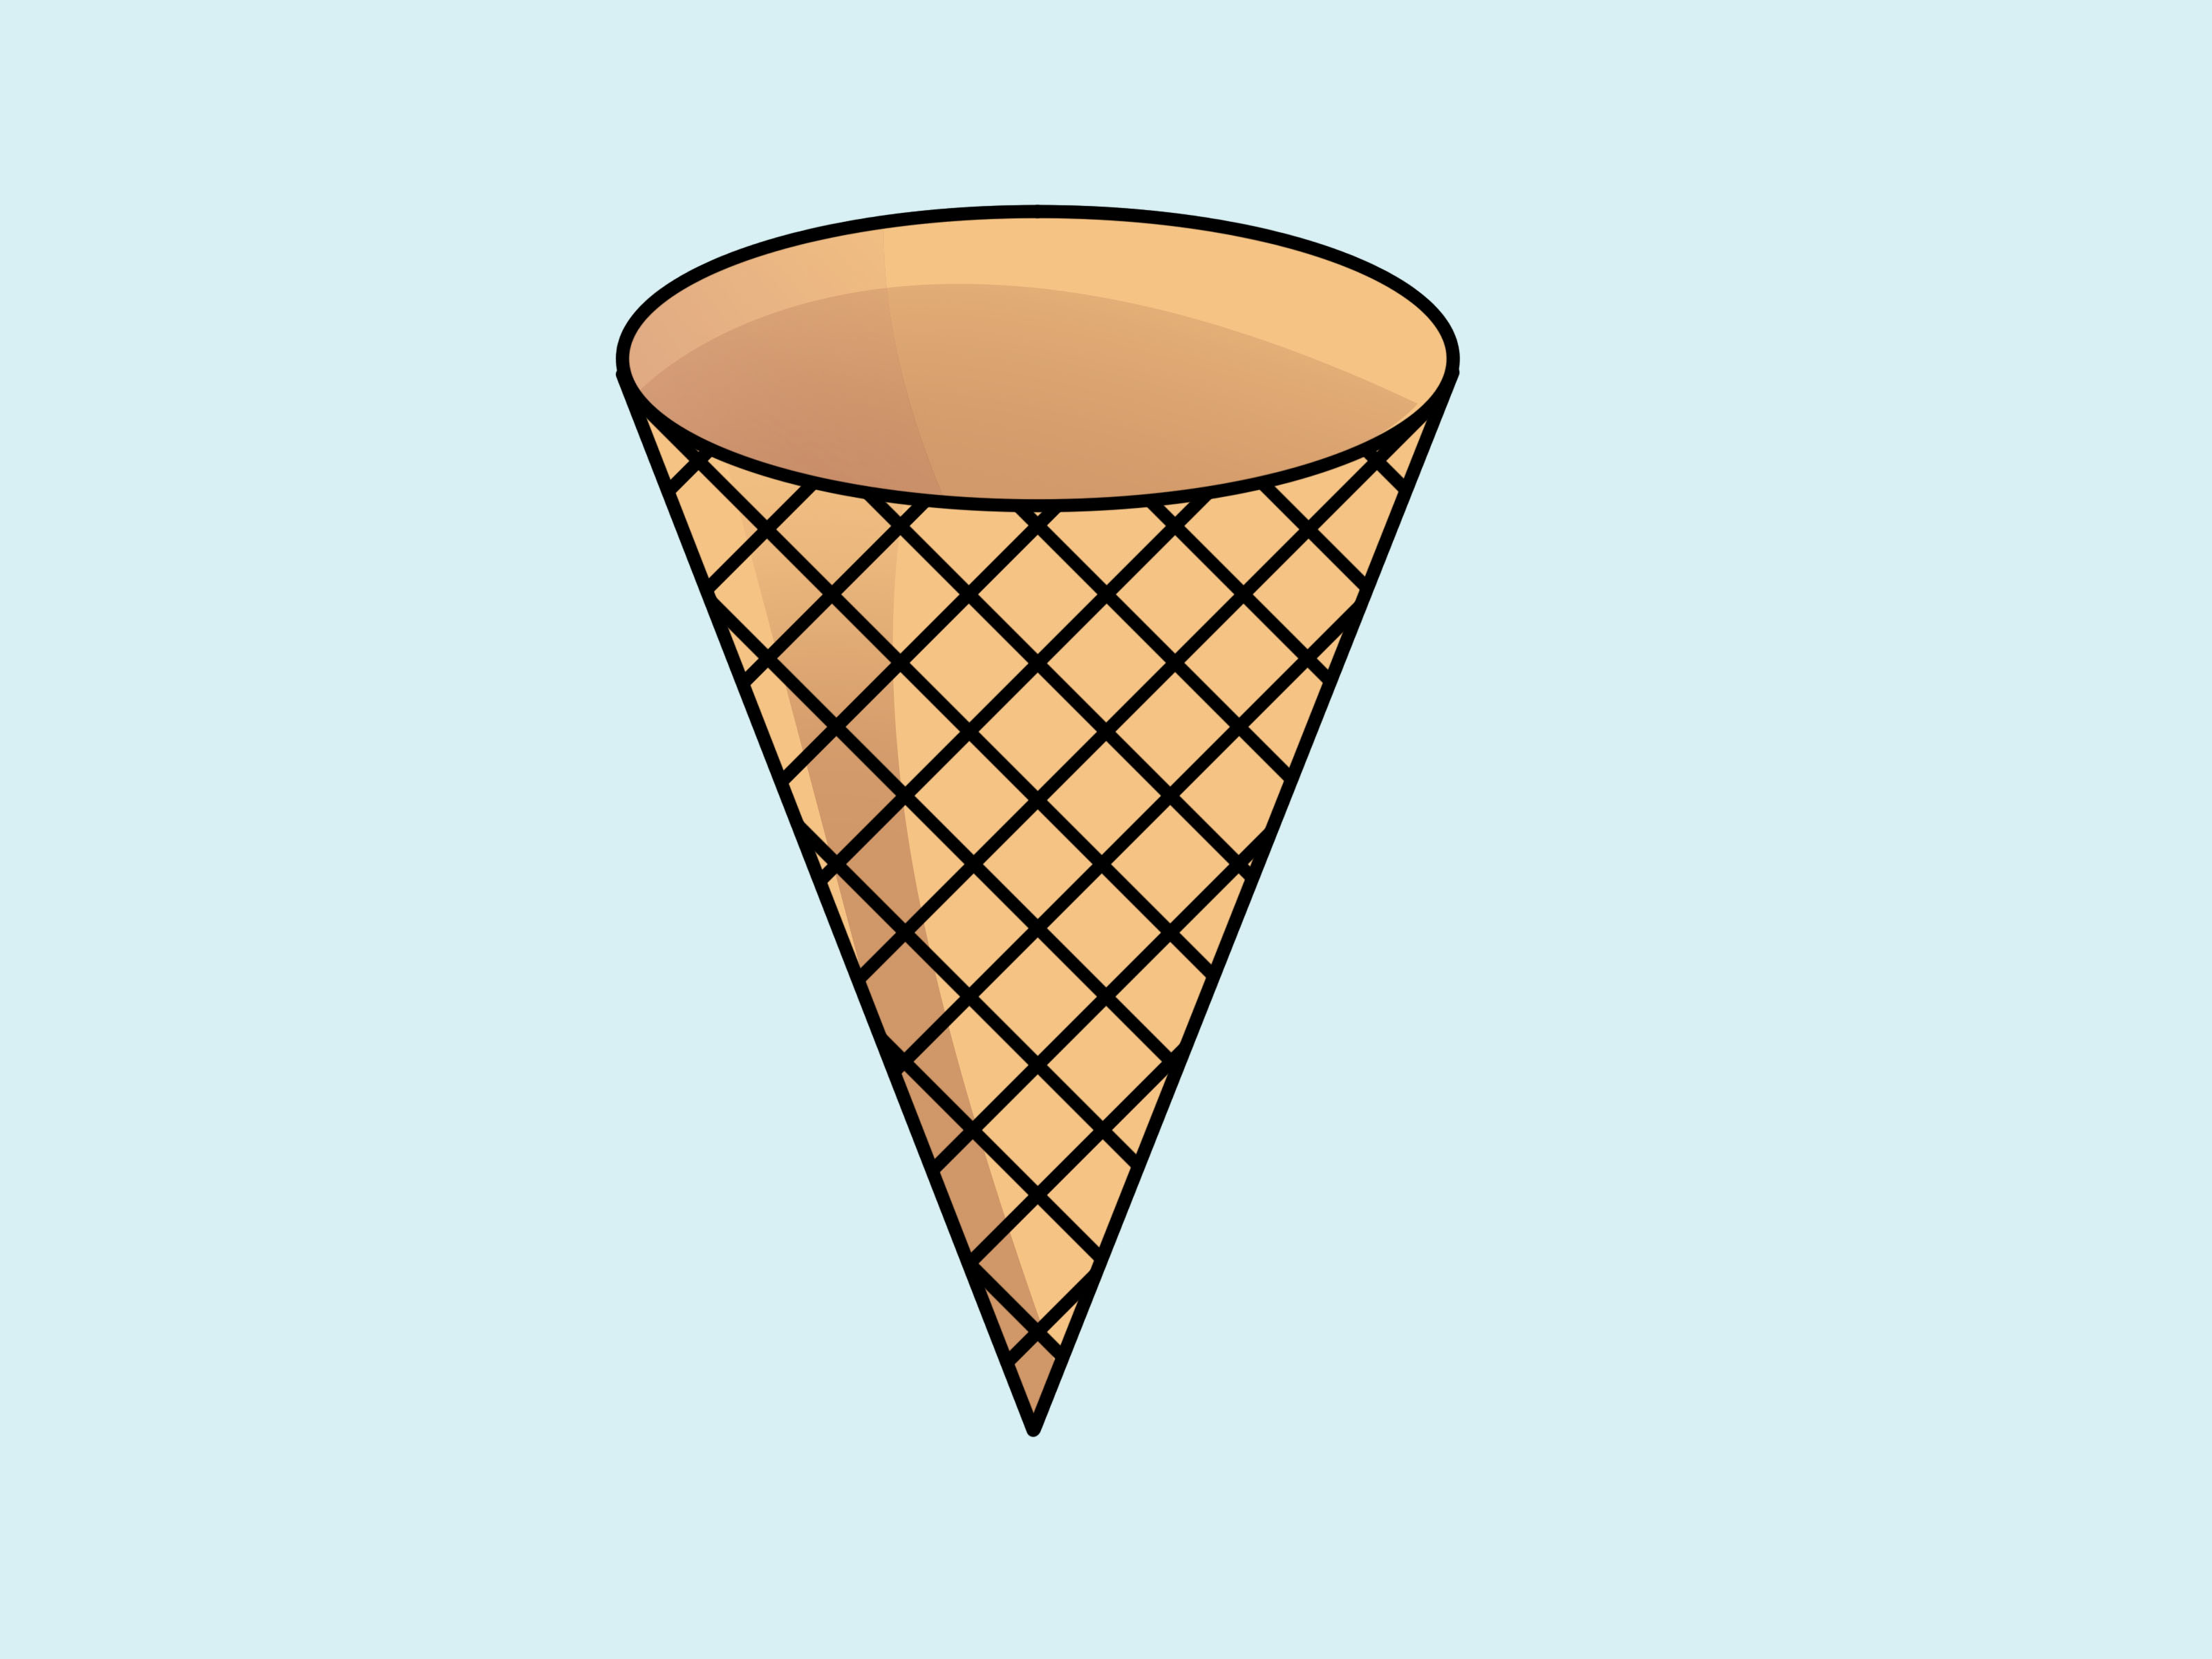 Picture Of A Ice Cream Cone - Cliparts.co